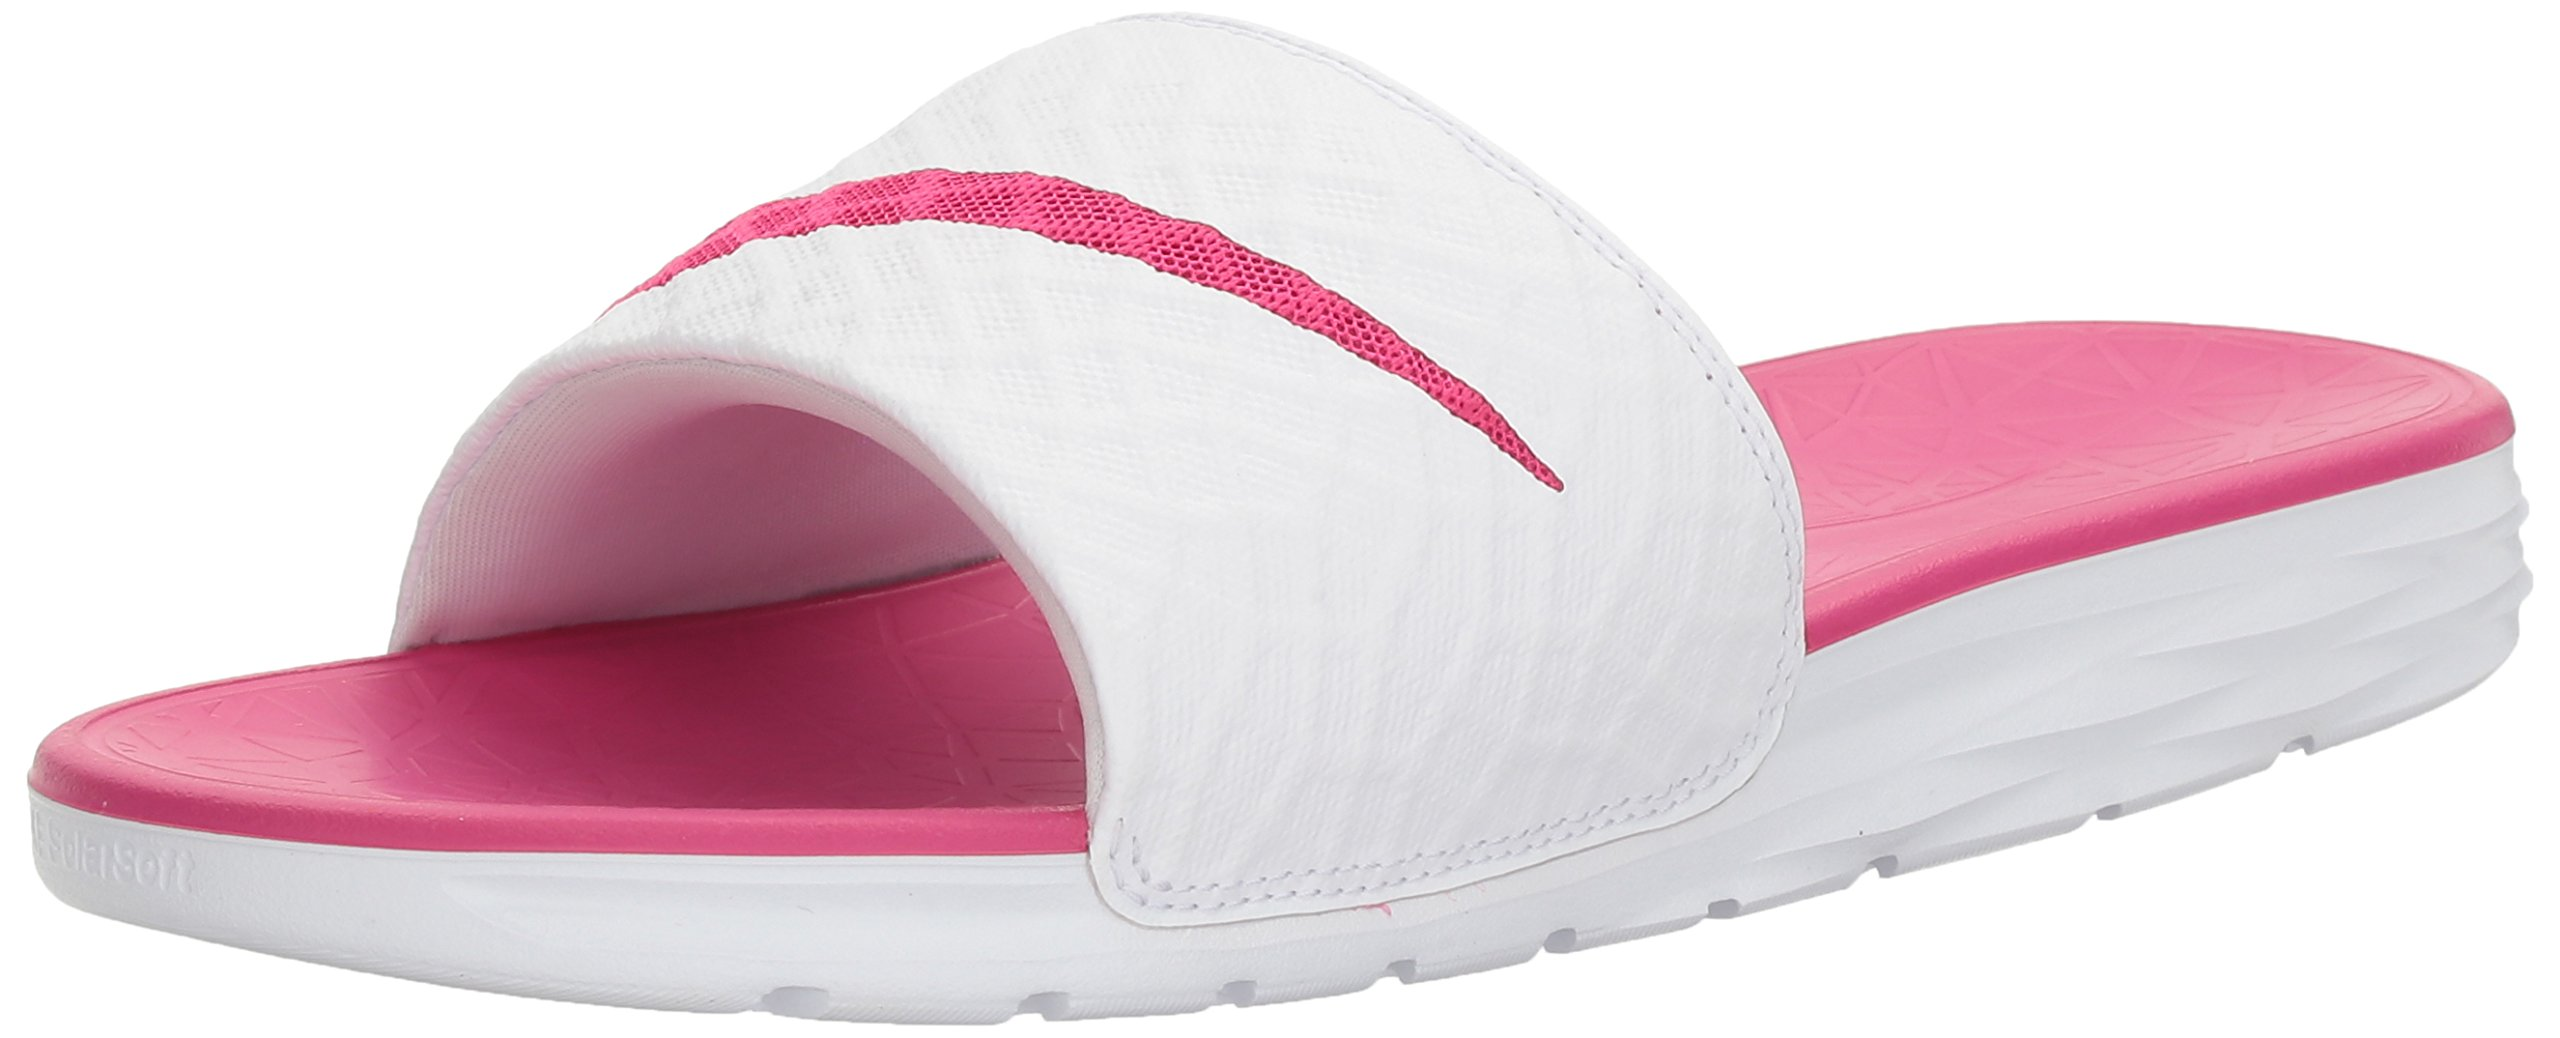 NIKE Women's Benassi Solarsoft Slide Sandal, White/Fire Berry, 11 B(M) US